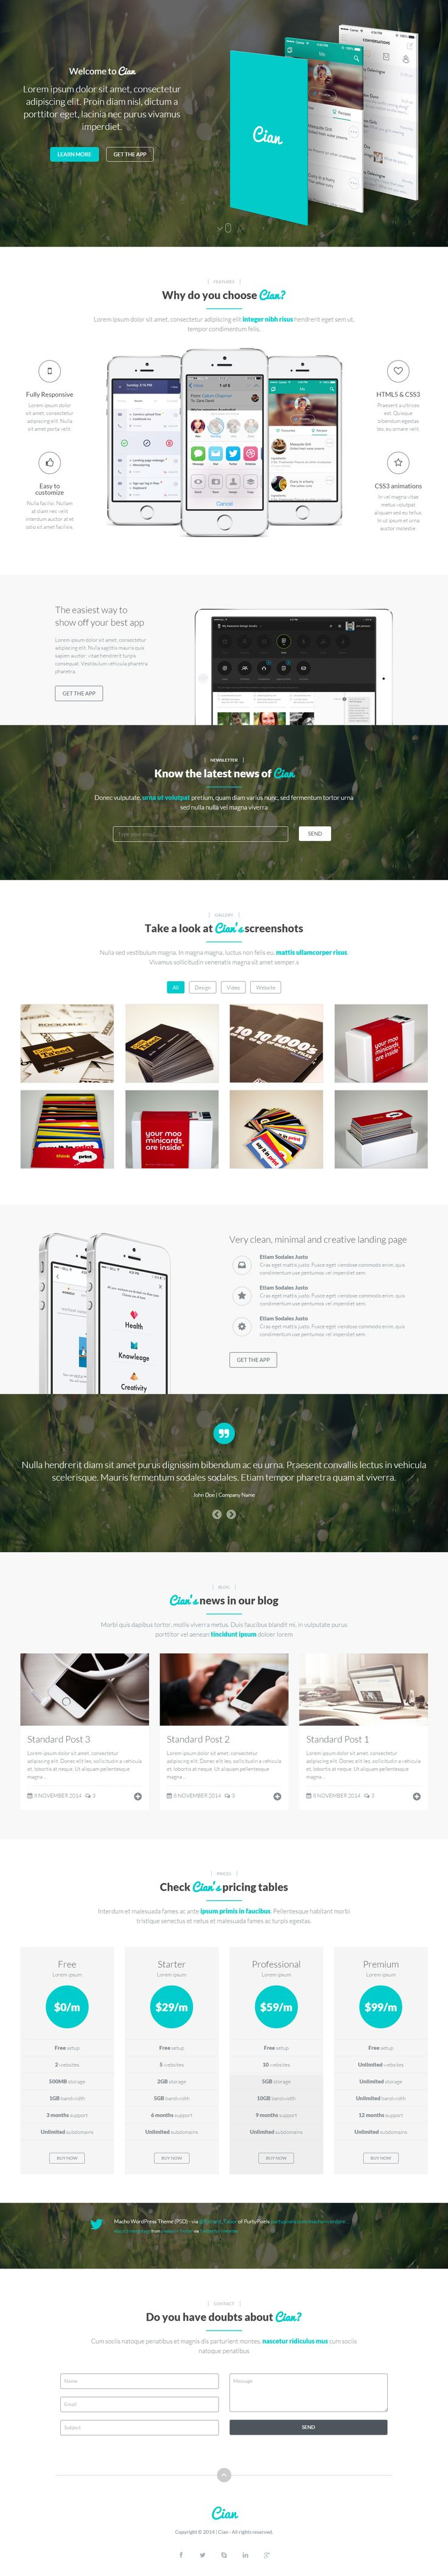 Cian is Premium Responsive Retina Parallax WordPress Landing Page Theme. MailChimp. Bootstrap Framework. Video Background. http://www.responsivemiracle.com/cms/cian-premium-responsive-app-landing-page-wordpress-theme/